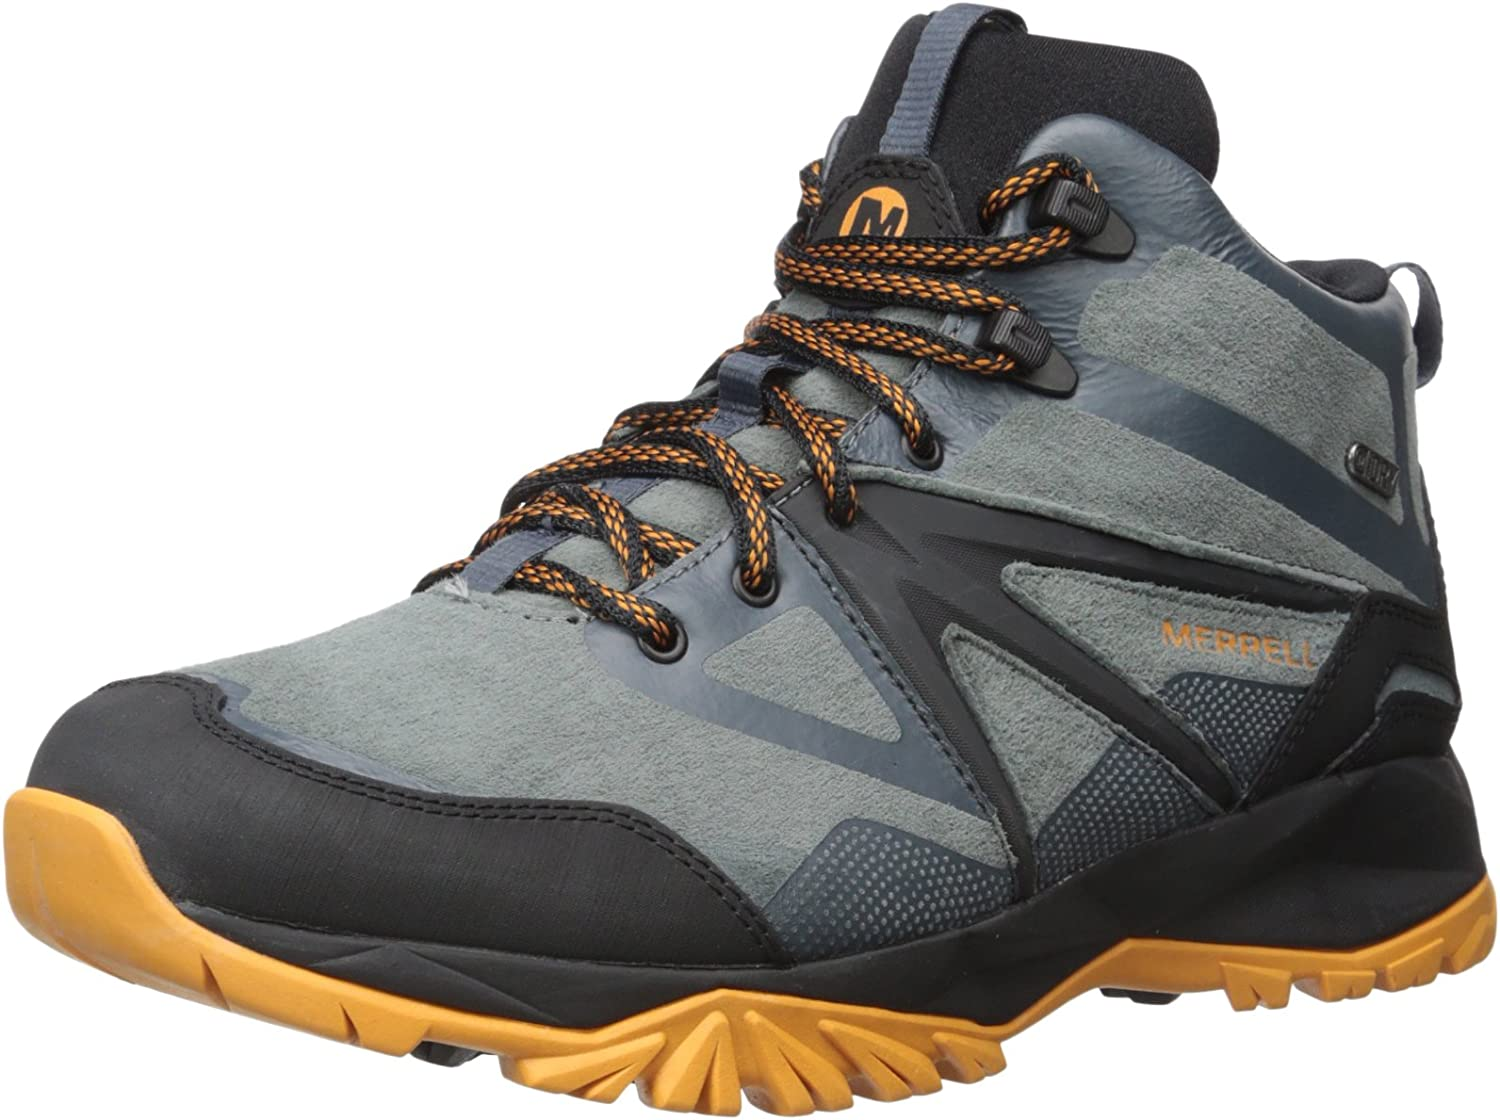 Merrell Men's Capra Bolt Leather Mid Waterproof Hiking Boot